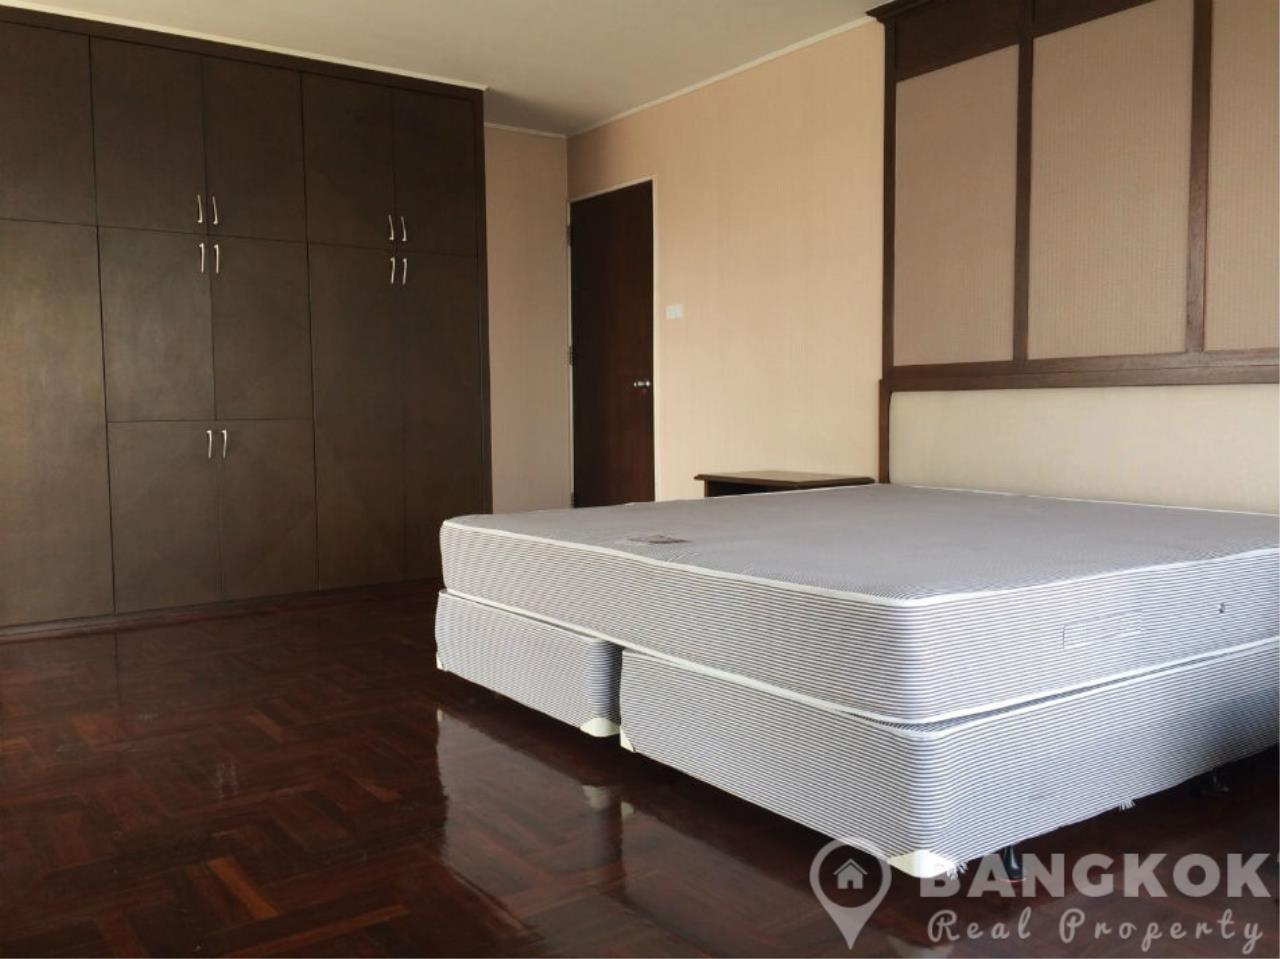 Bangkok Real Property Agency's Casa Viva | Very Spacious 3 Bed 3 Bath Condo in Ekkamai 9